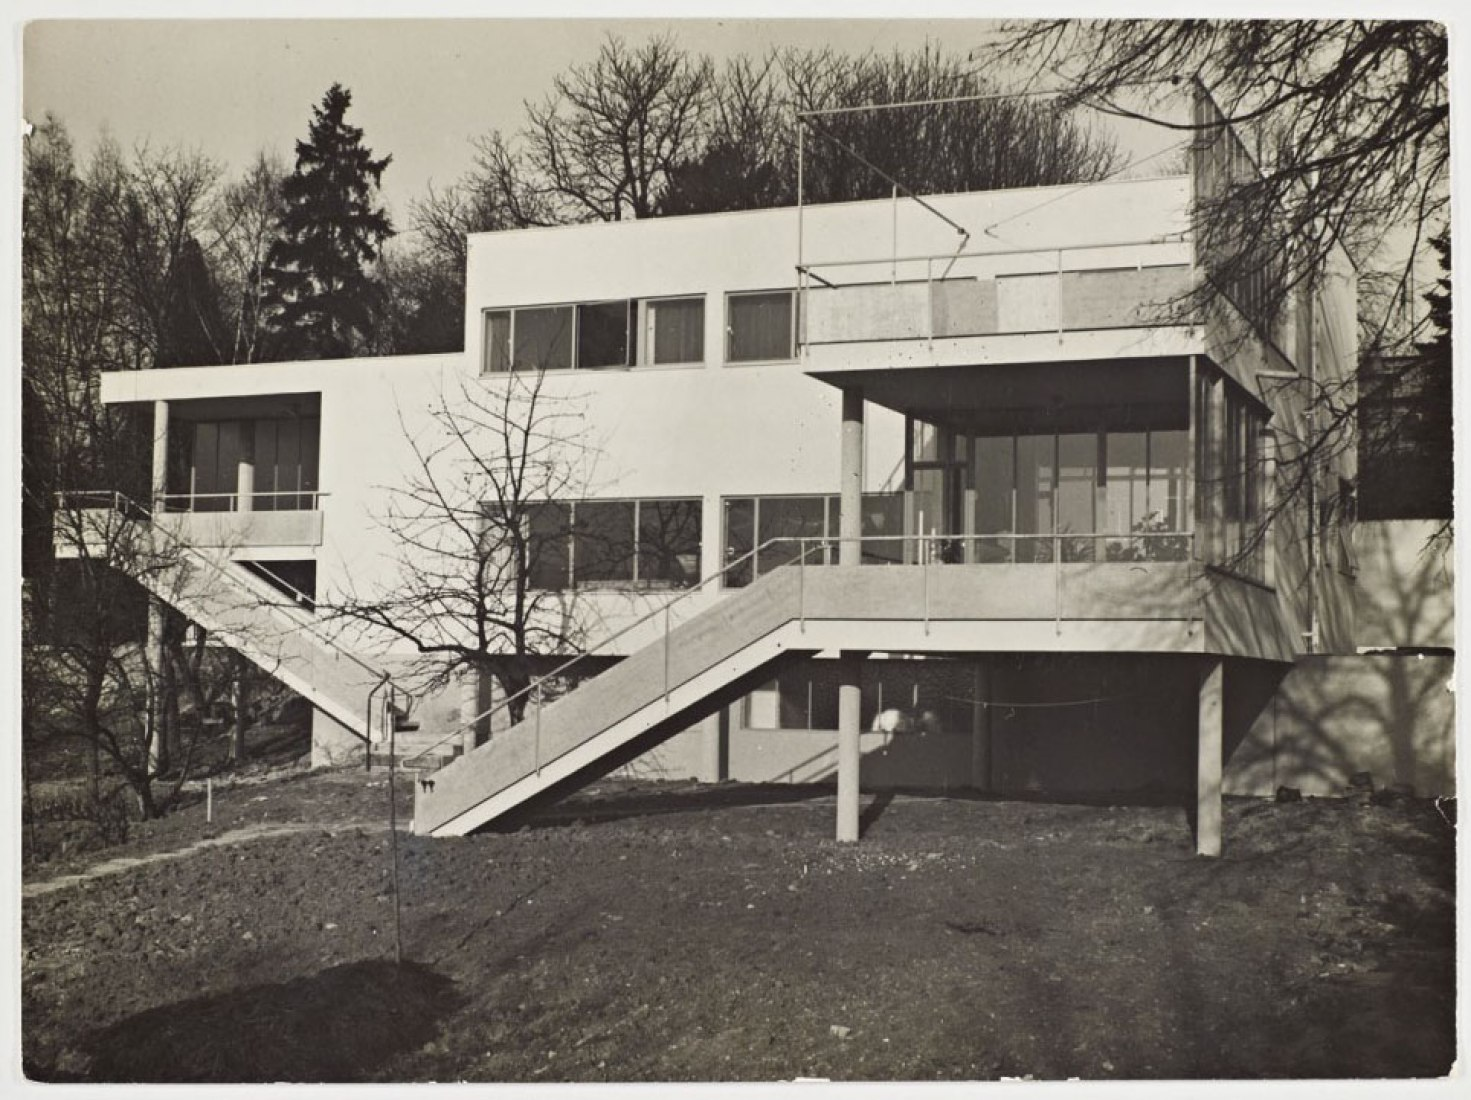 Marcel Breuer Bauhaus Dessau | Marcel Breuer - Design And Architecture | The Strength Of Architecture | From 1998